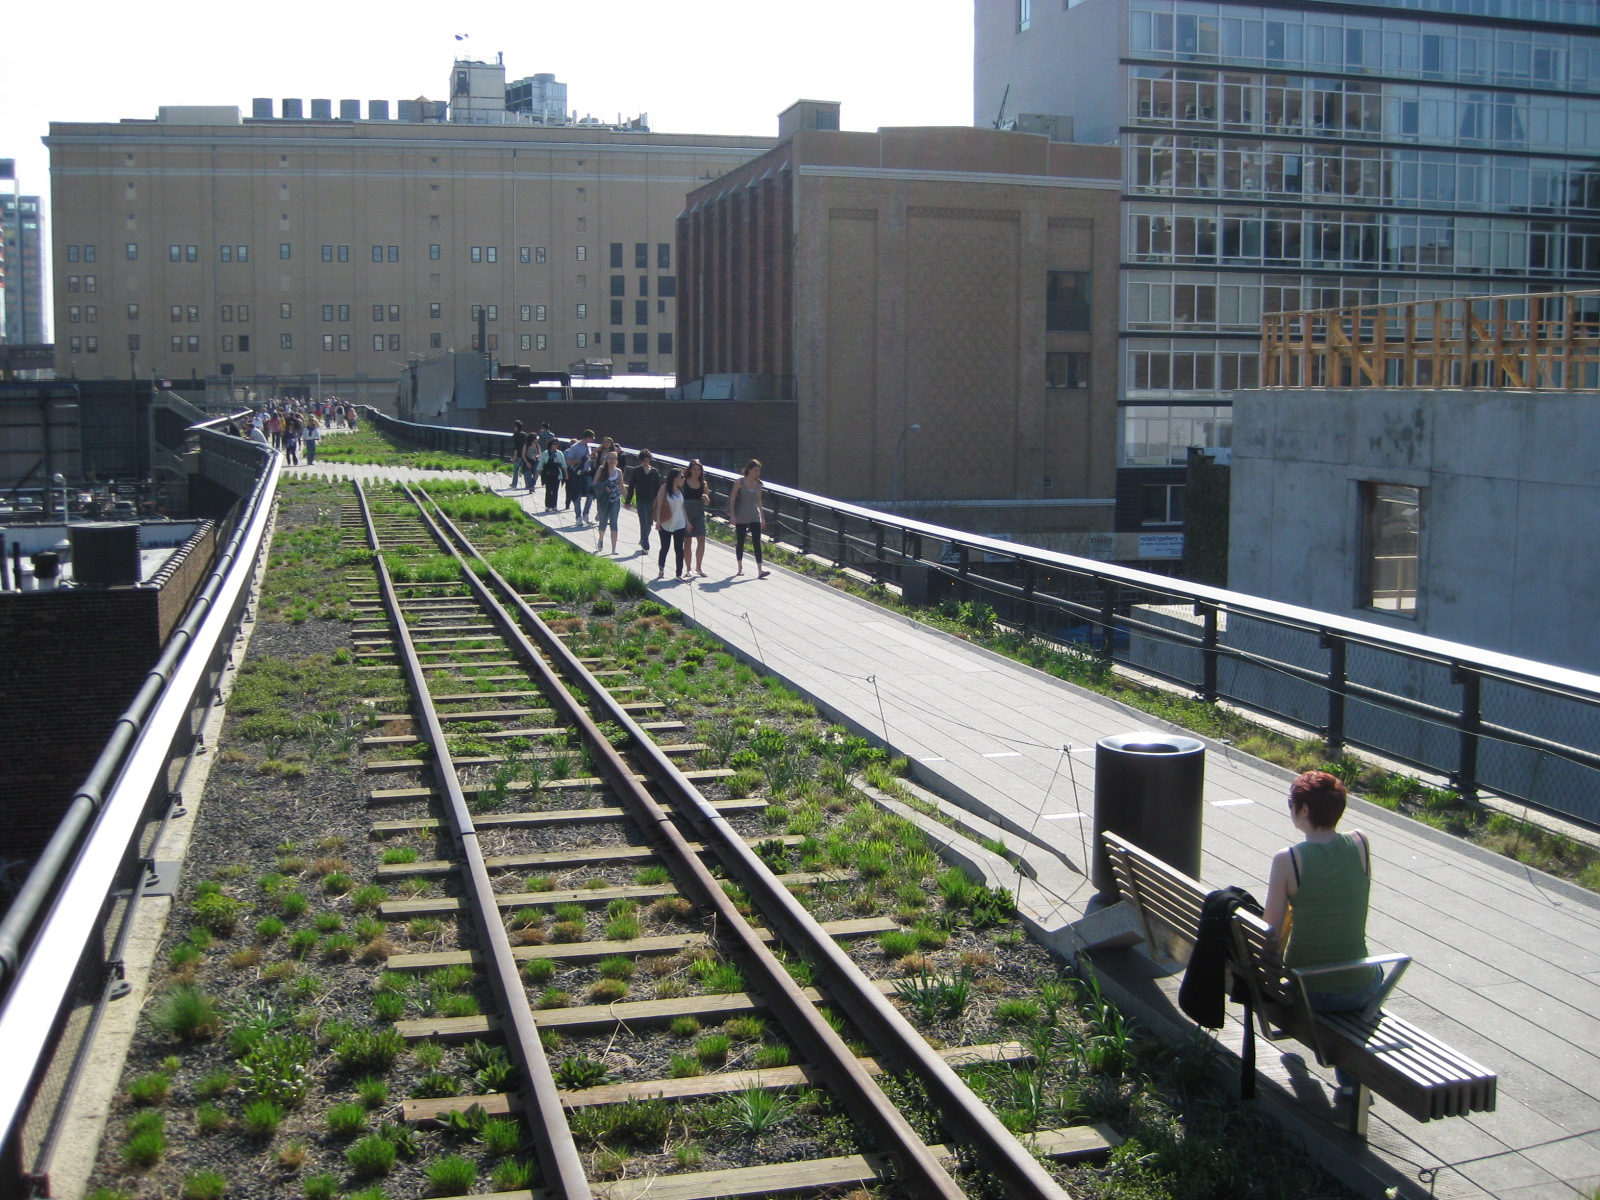 High Line: Check out this beautiful aerial greenway in New